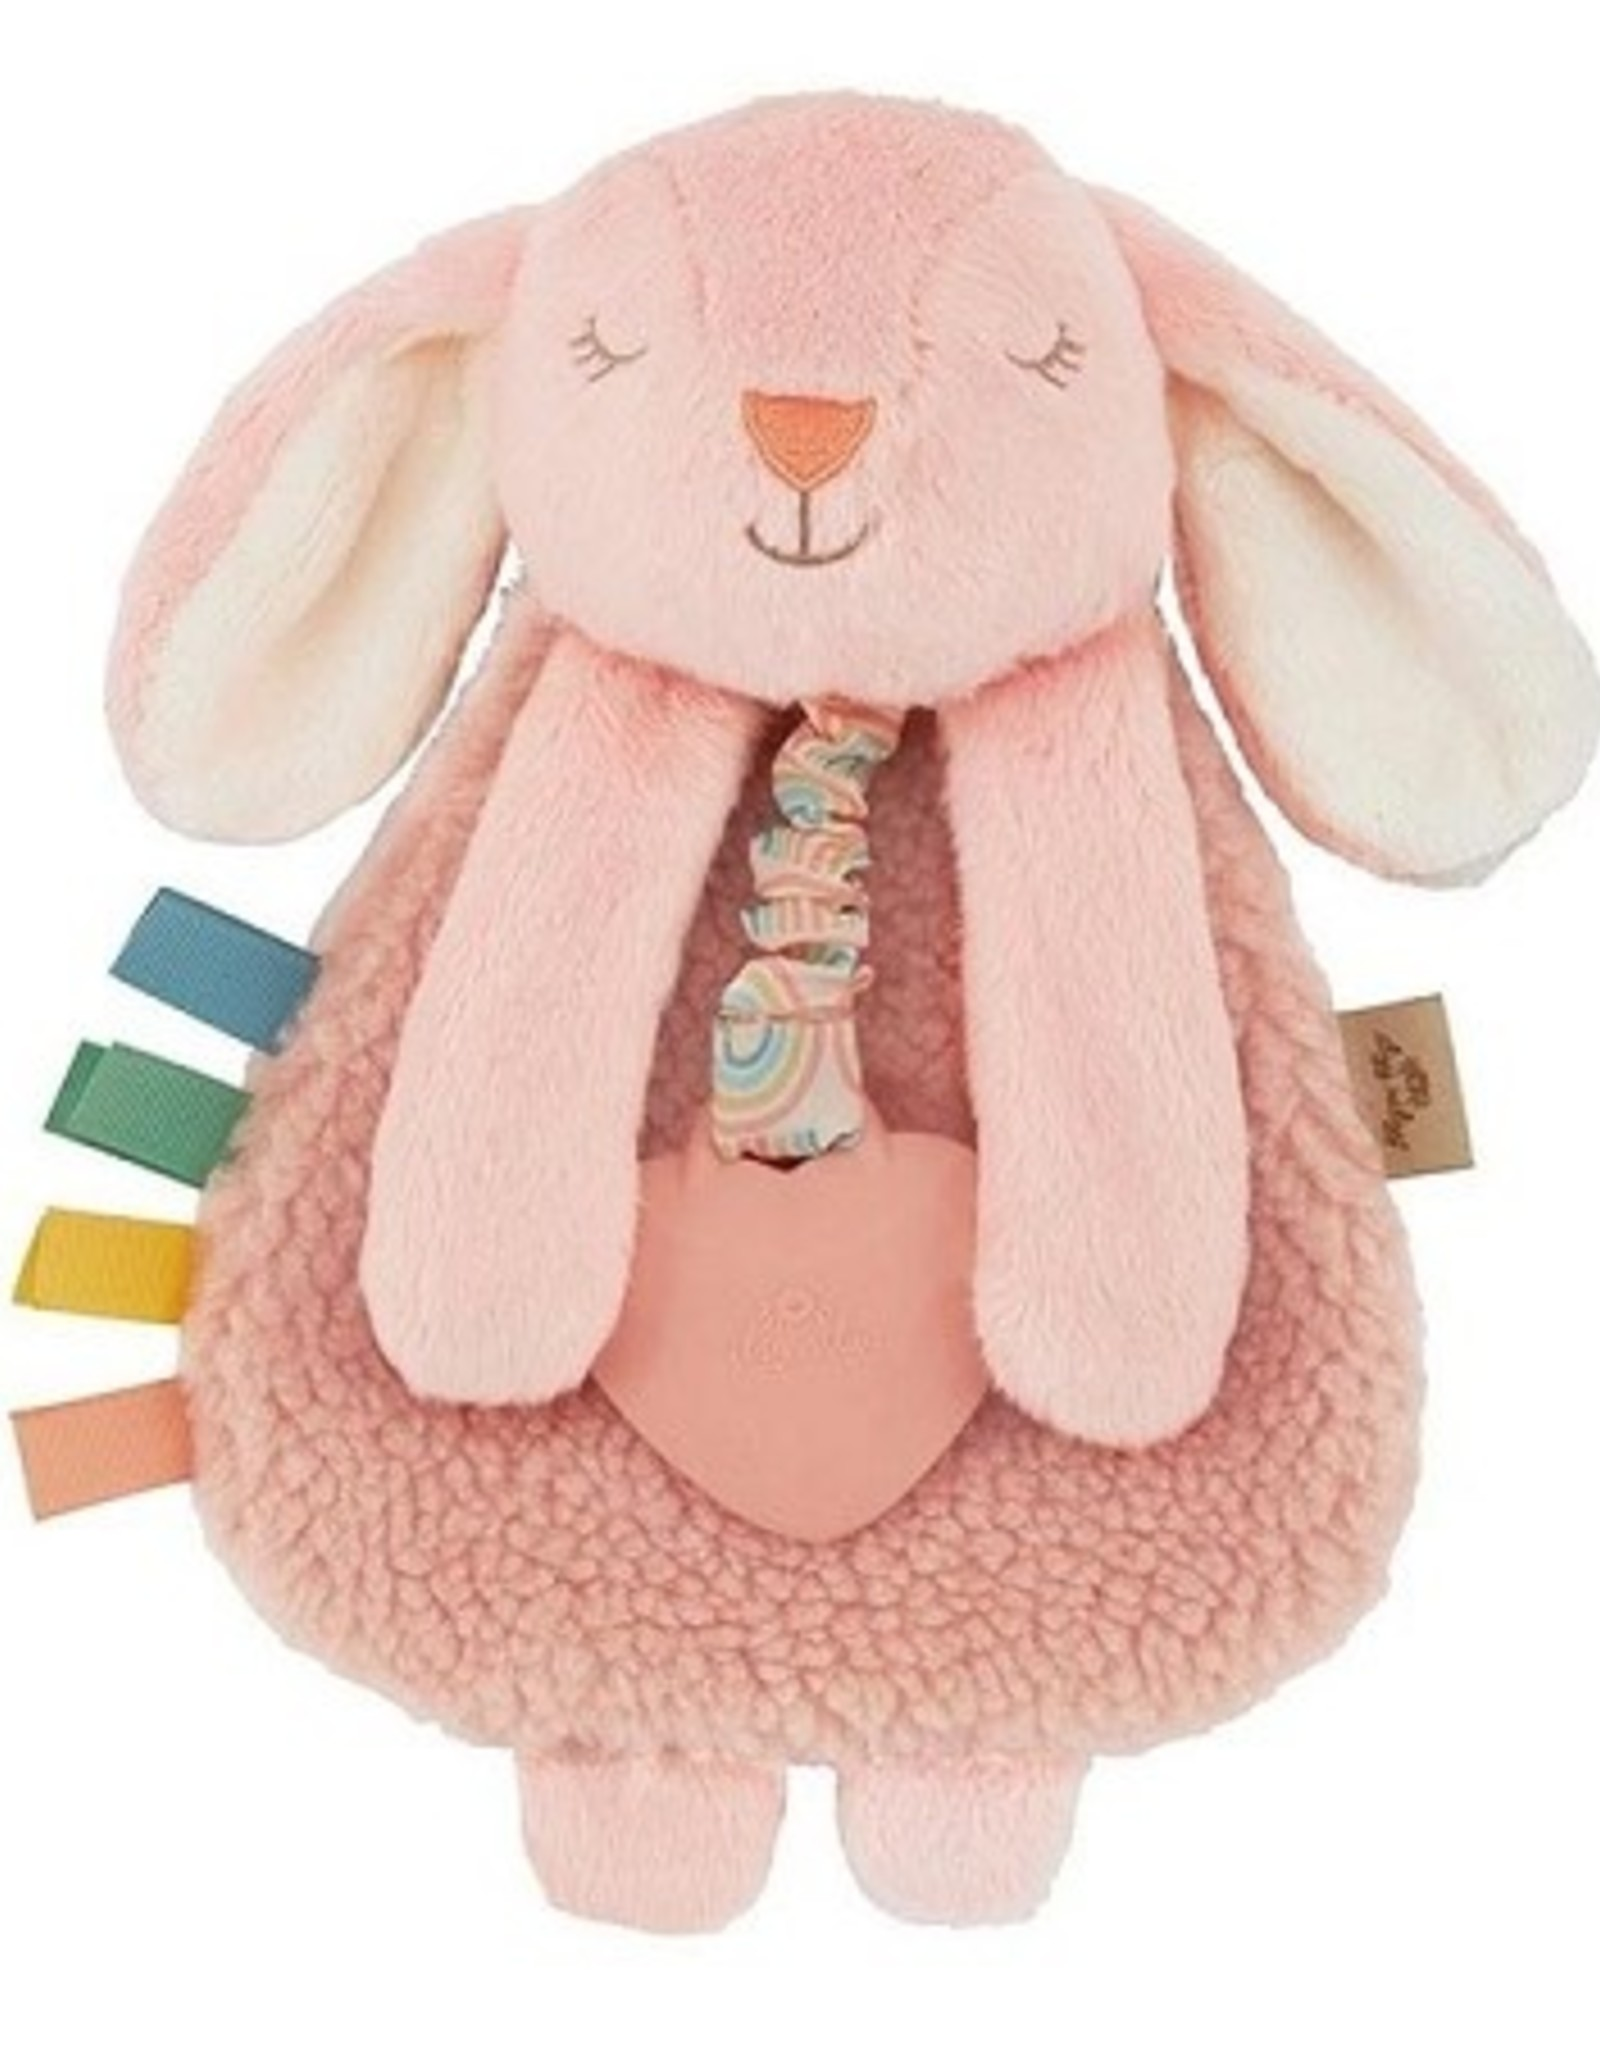 Itzy Ritzy Plush Lovey w/ Teether